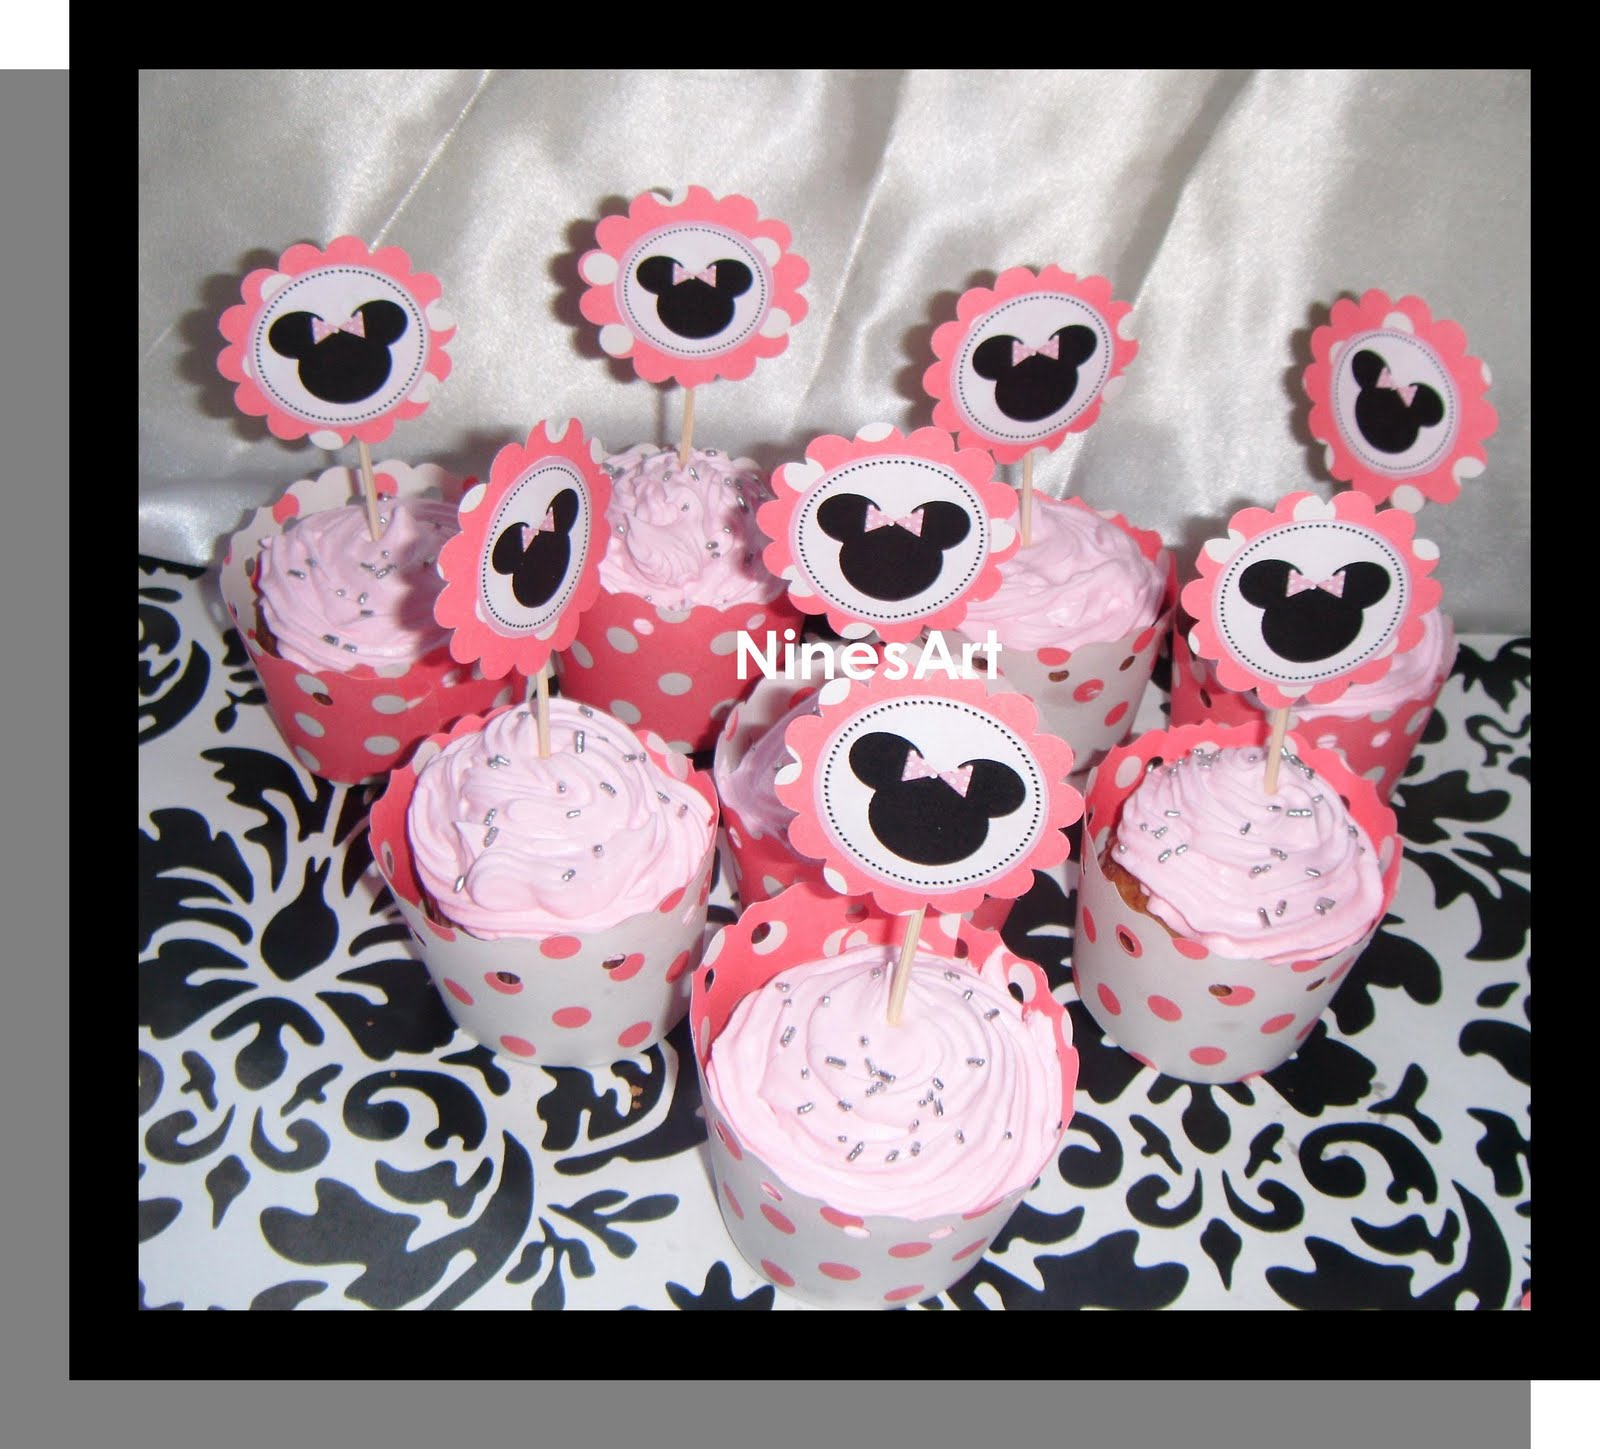 Pin cumpleanos tematicos minnie mouse wallpapers real - Cumpleanos minnie mouse ...